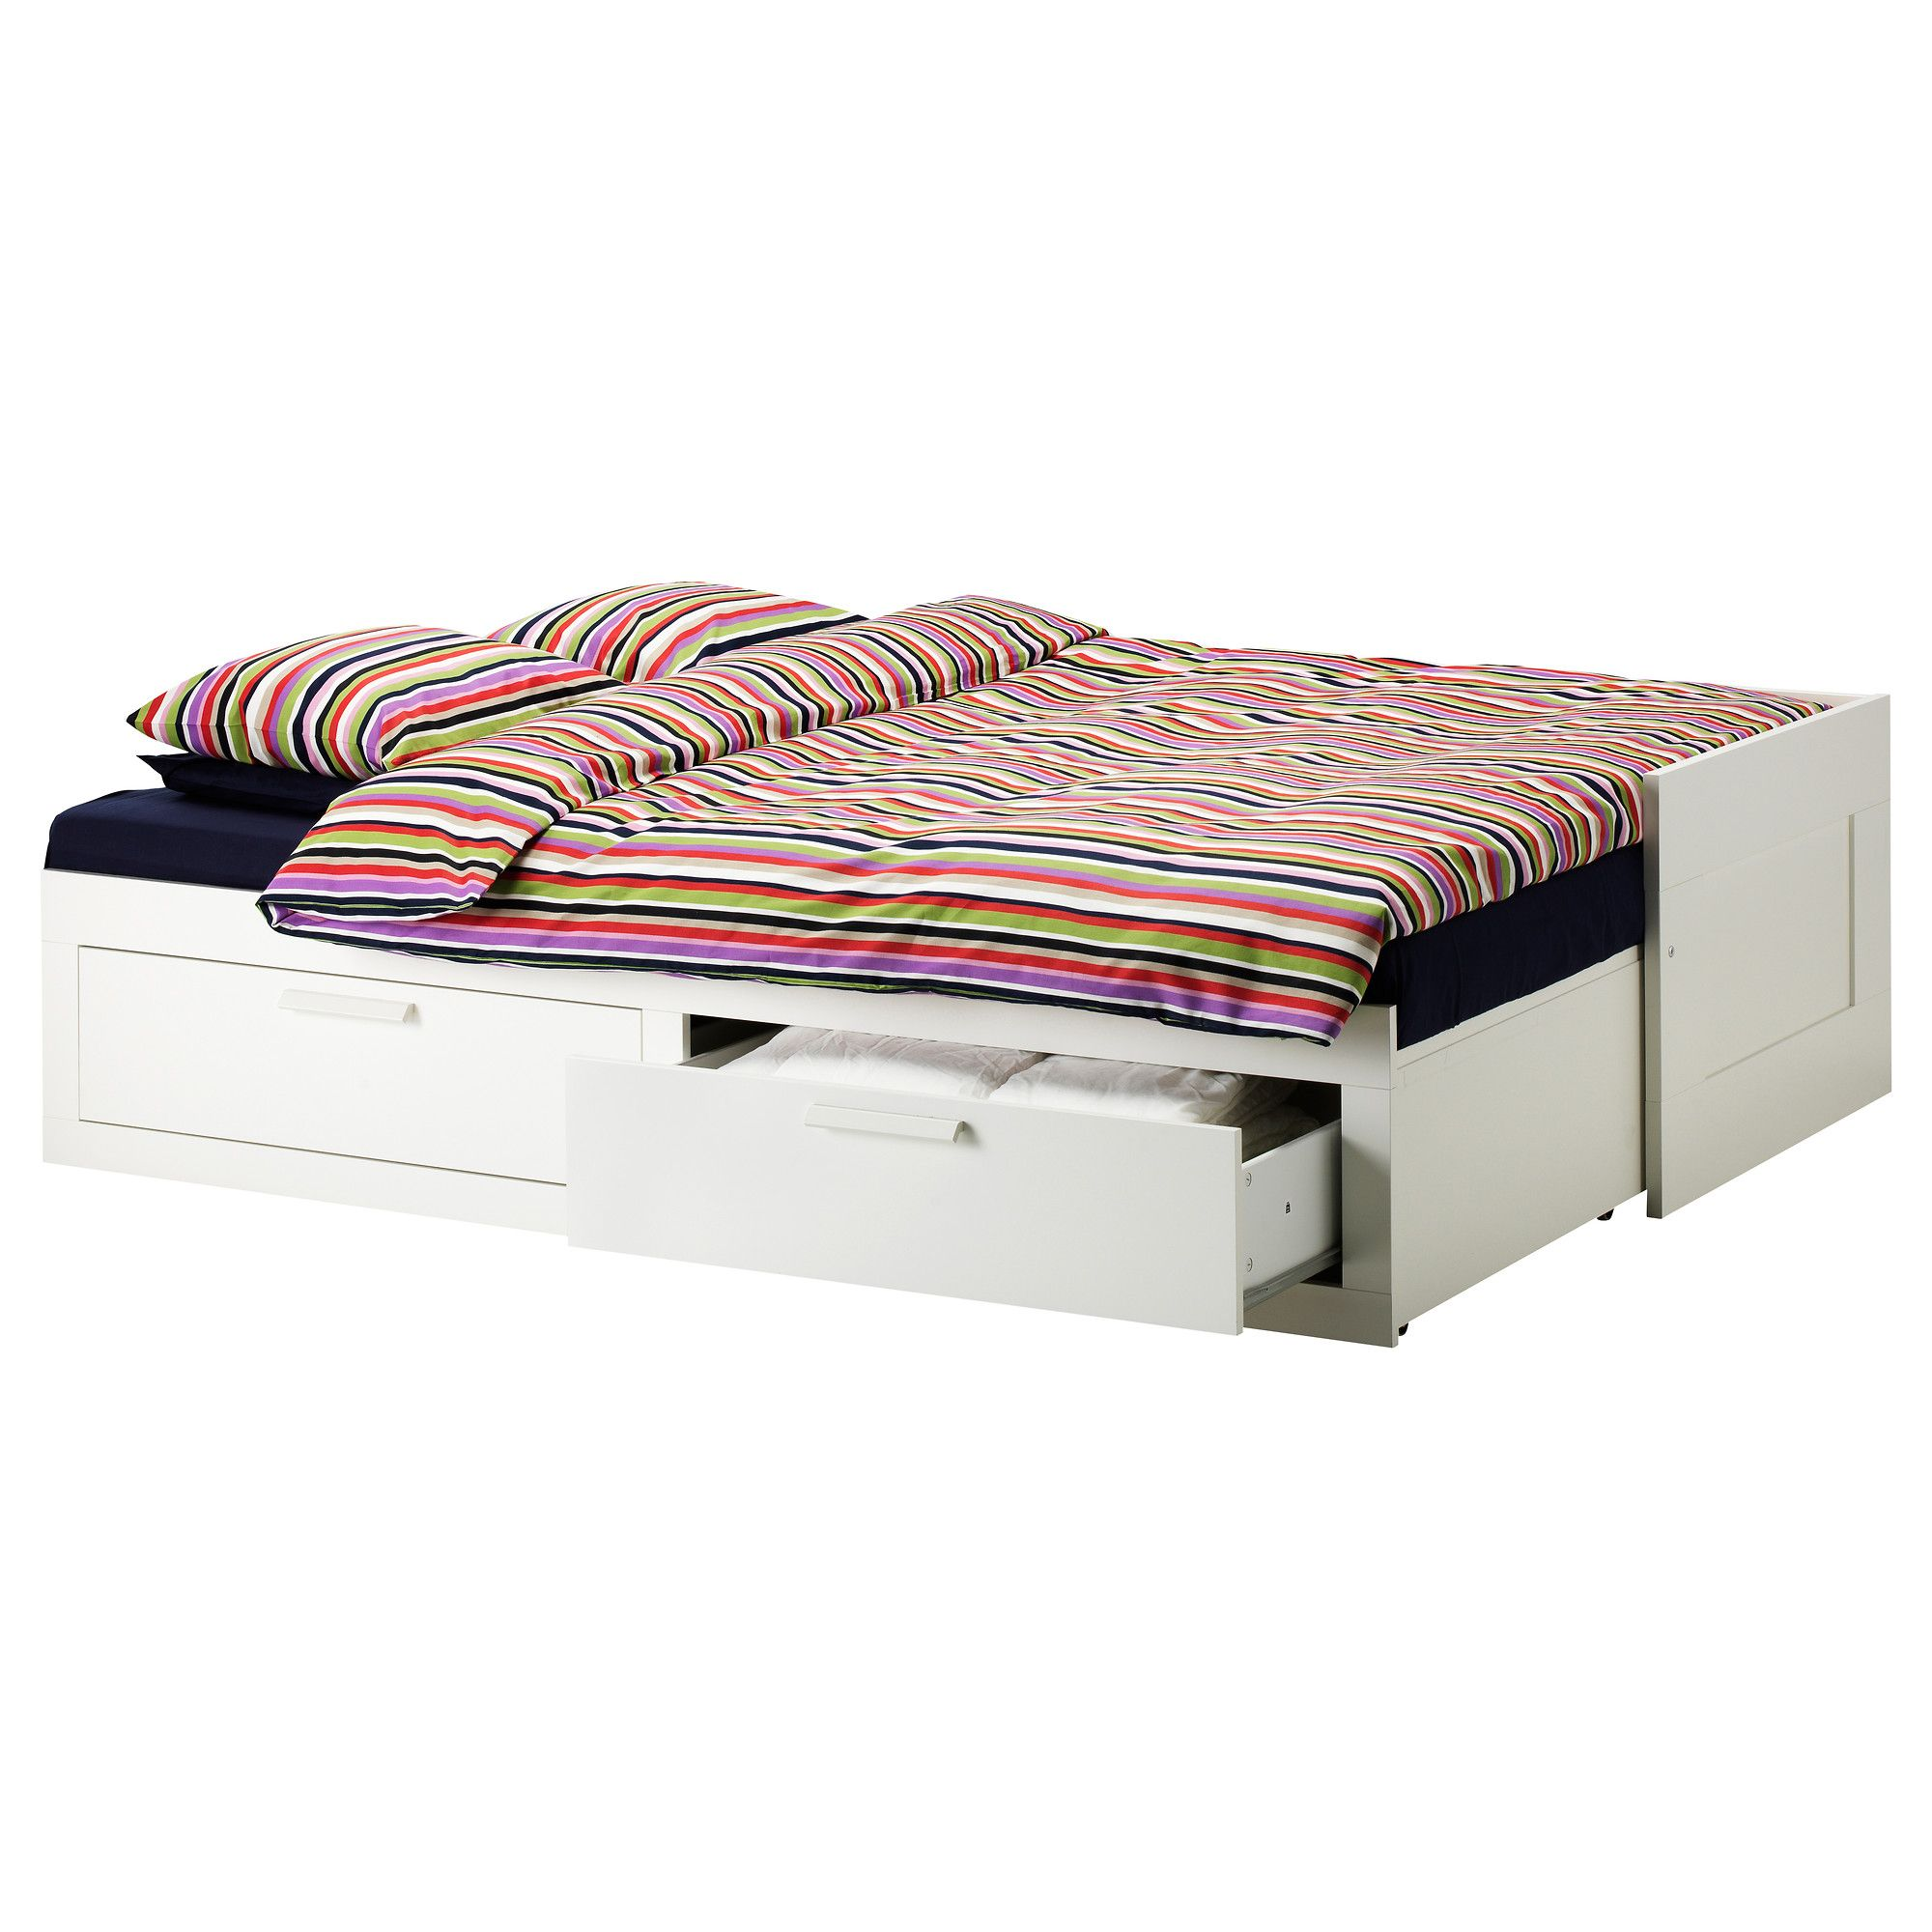 BRIMNES Day-bed w 2 drawers/2 mattresses White/moshult firm IKEA ...